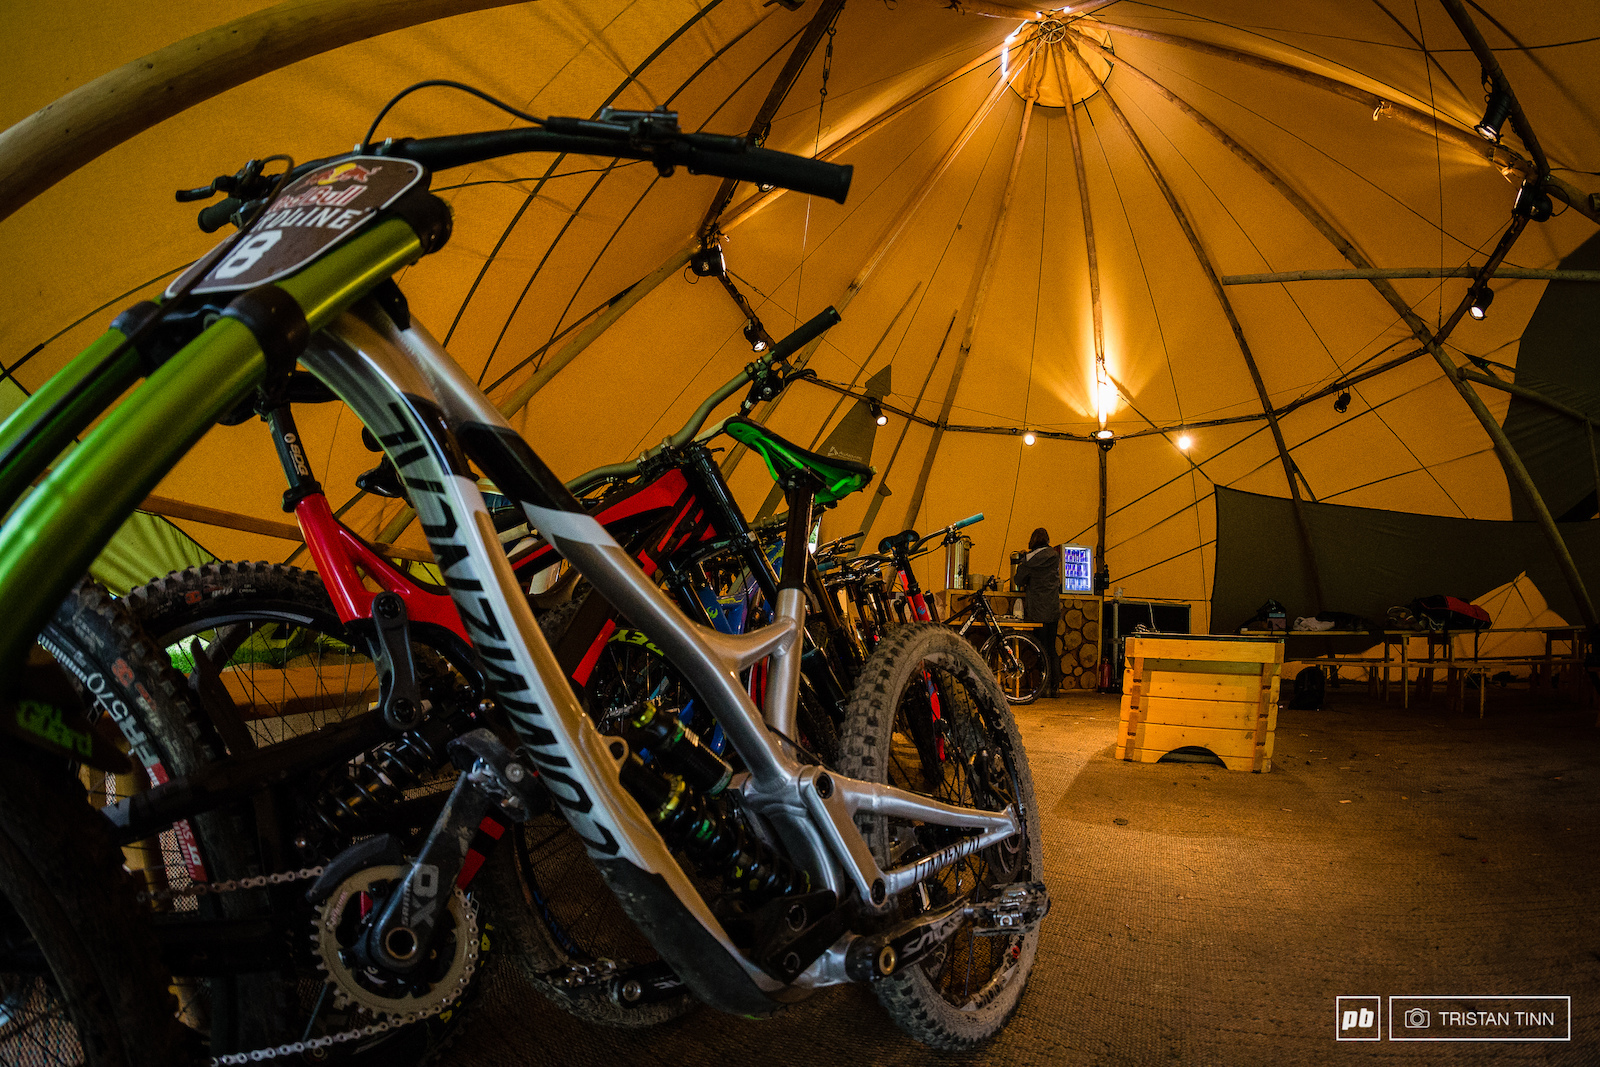 The bikes take shelter from the brewing strorm